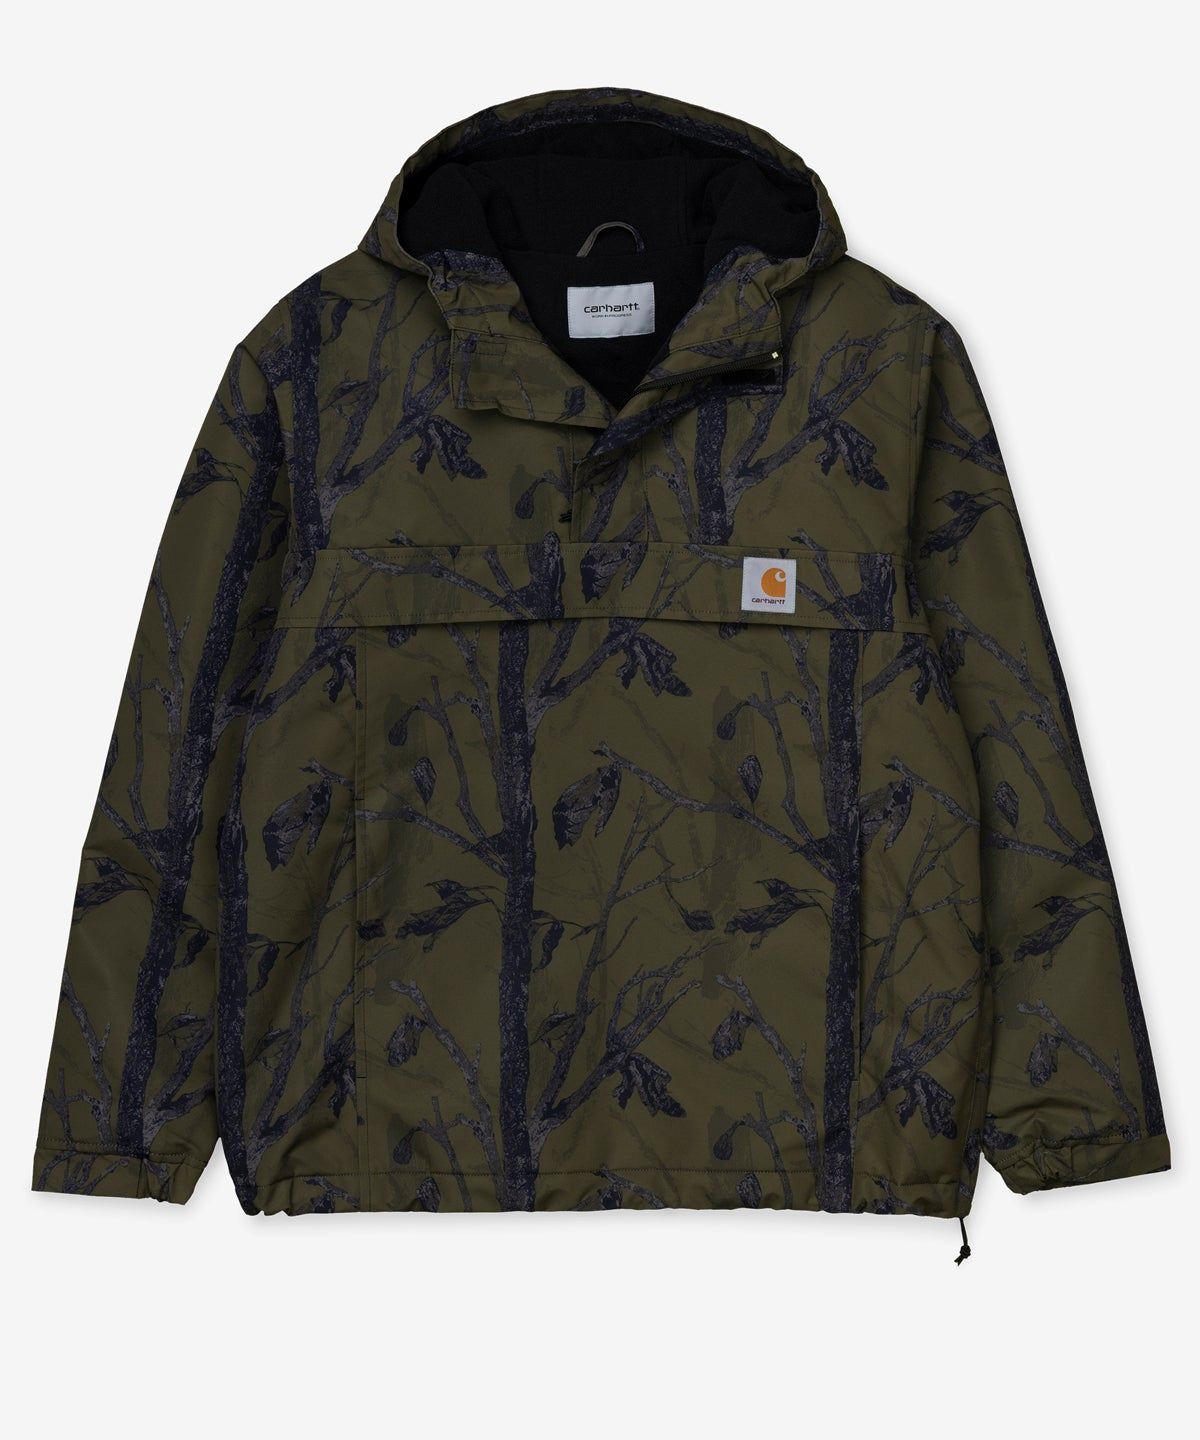 Image of CARHARTT WIP_NIMBUS JACKET :::GREEN TREE CAMO:::